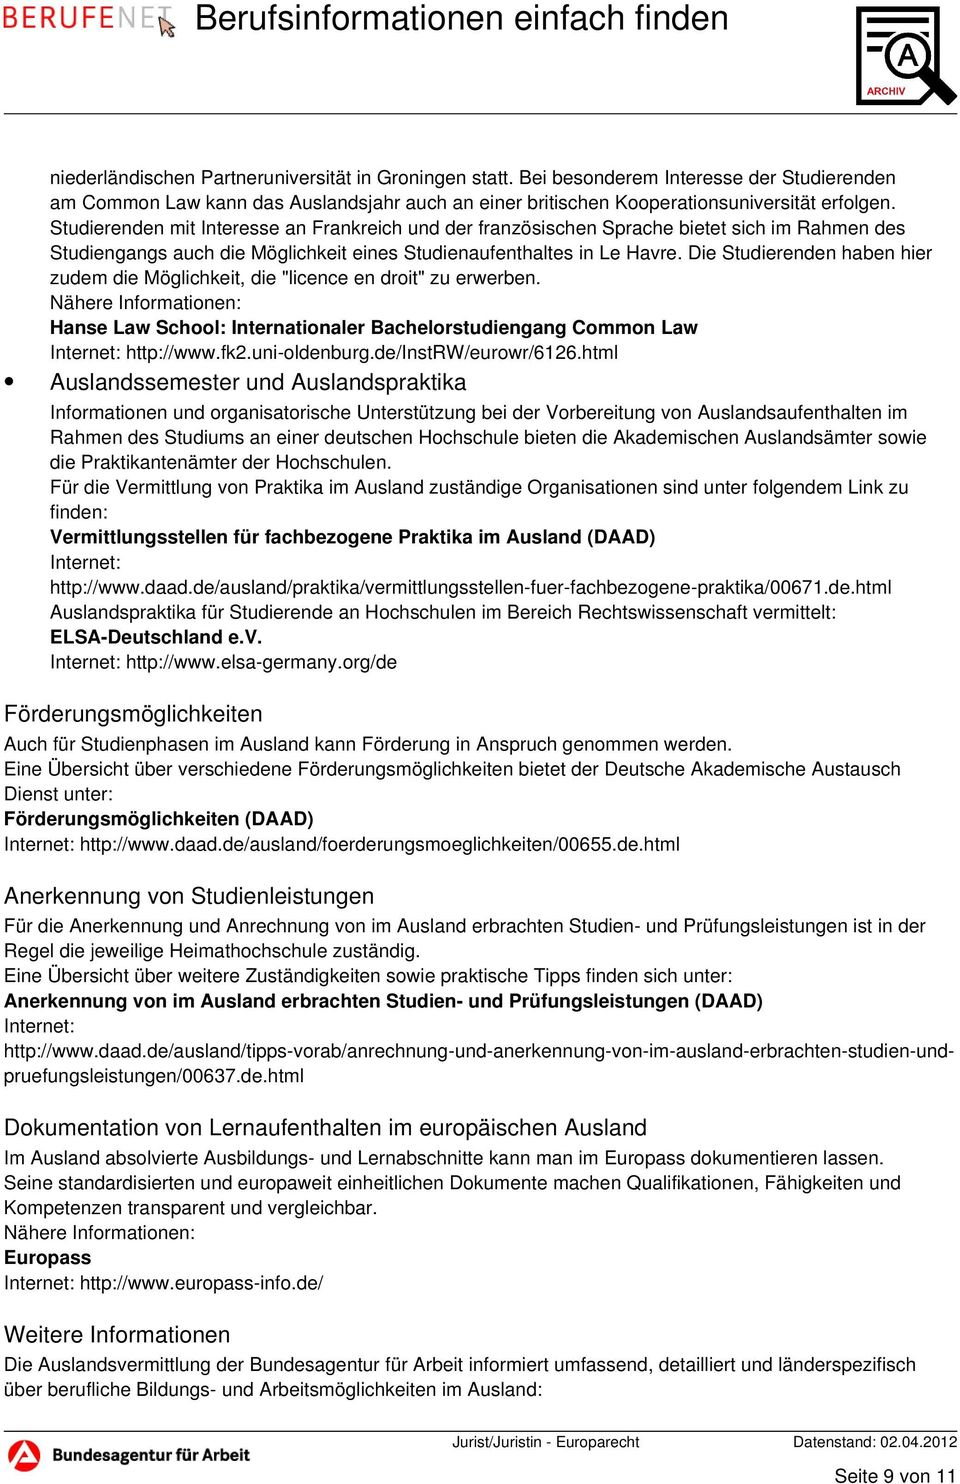 "Die Studierenden haben hier zudem die Möglichkeit, die ""licence en droit"" zu erwerben. Nähere Informationen: Hanse Law School: Internationaler Bachelorstudiengang Common Law Internet: http://www.fk2."